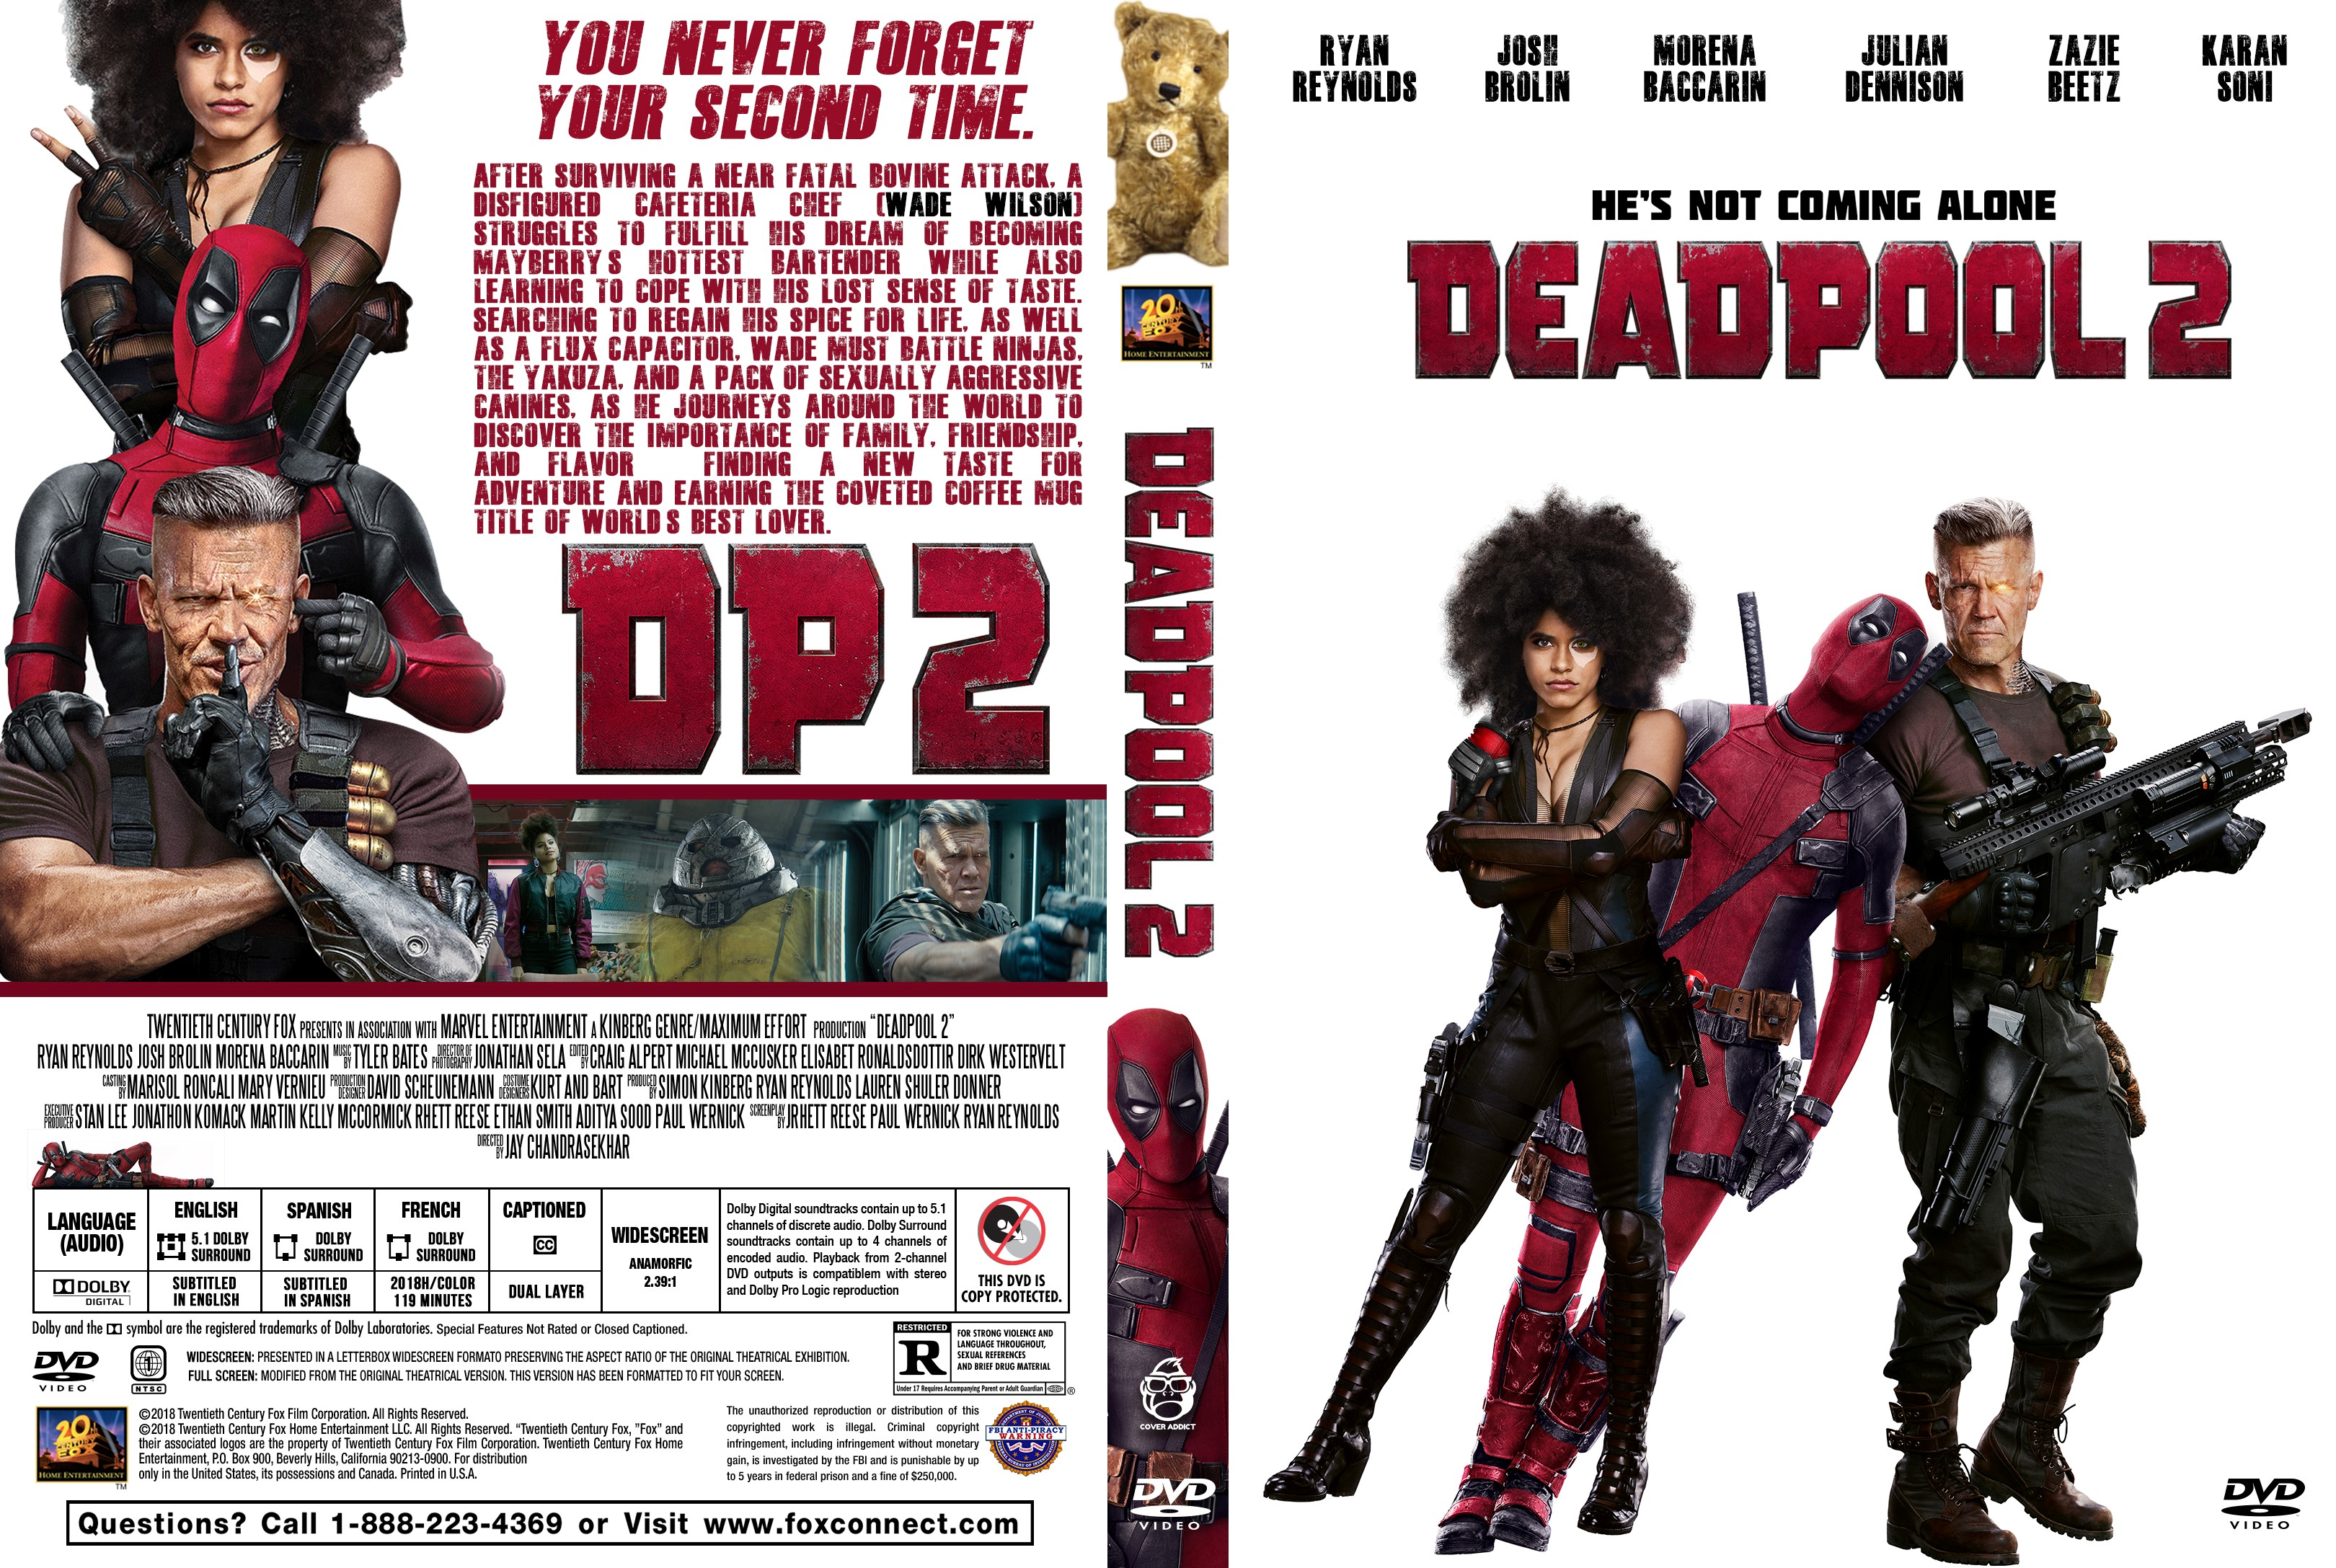 300 Full Movie >> Deadpool 2 DVD Cover - Cover Addict - DVD and Bluray Covers